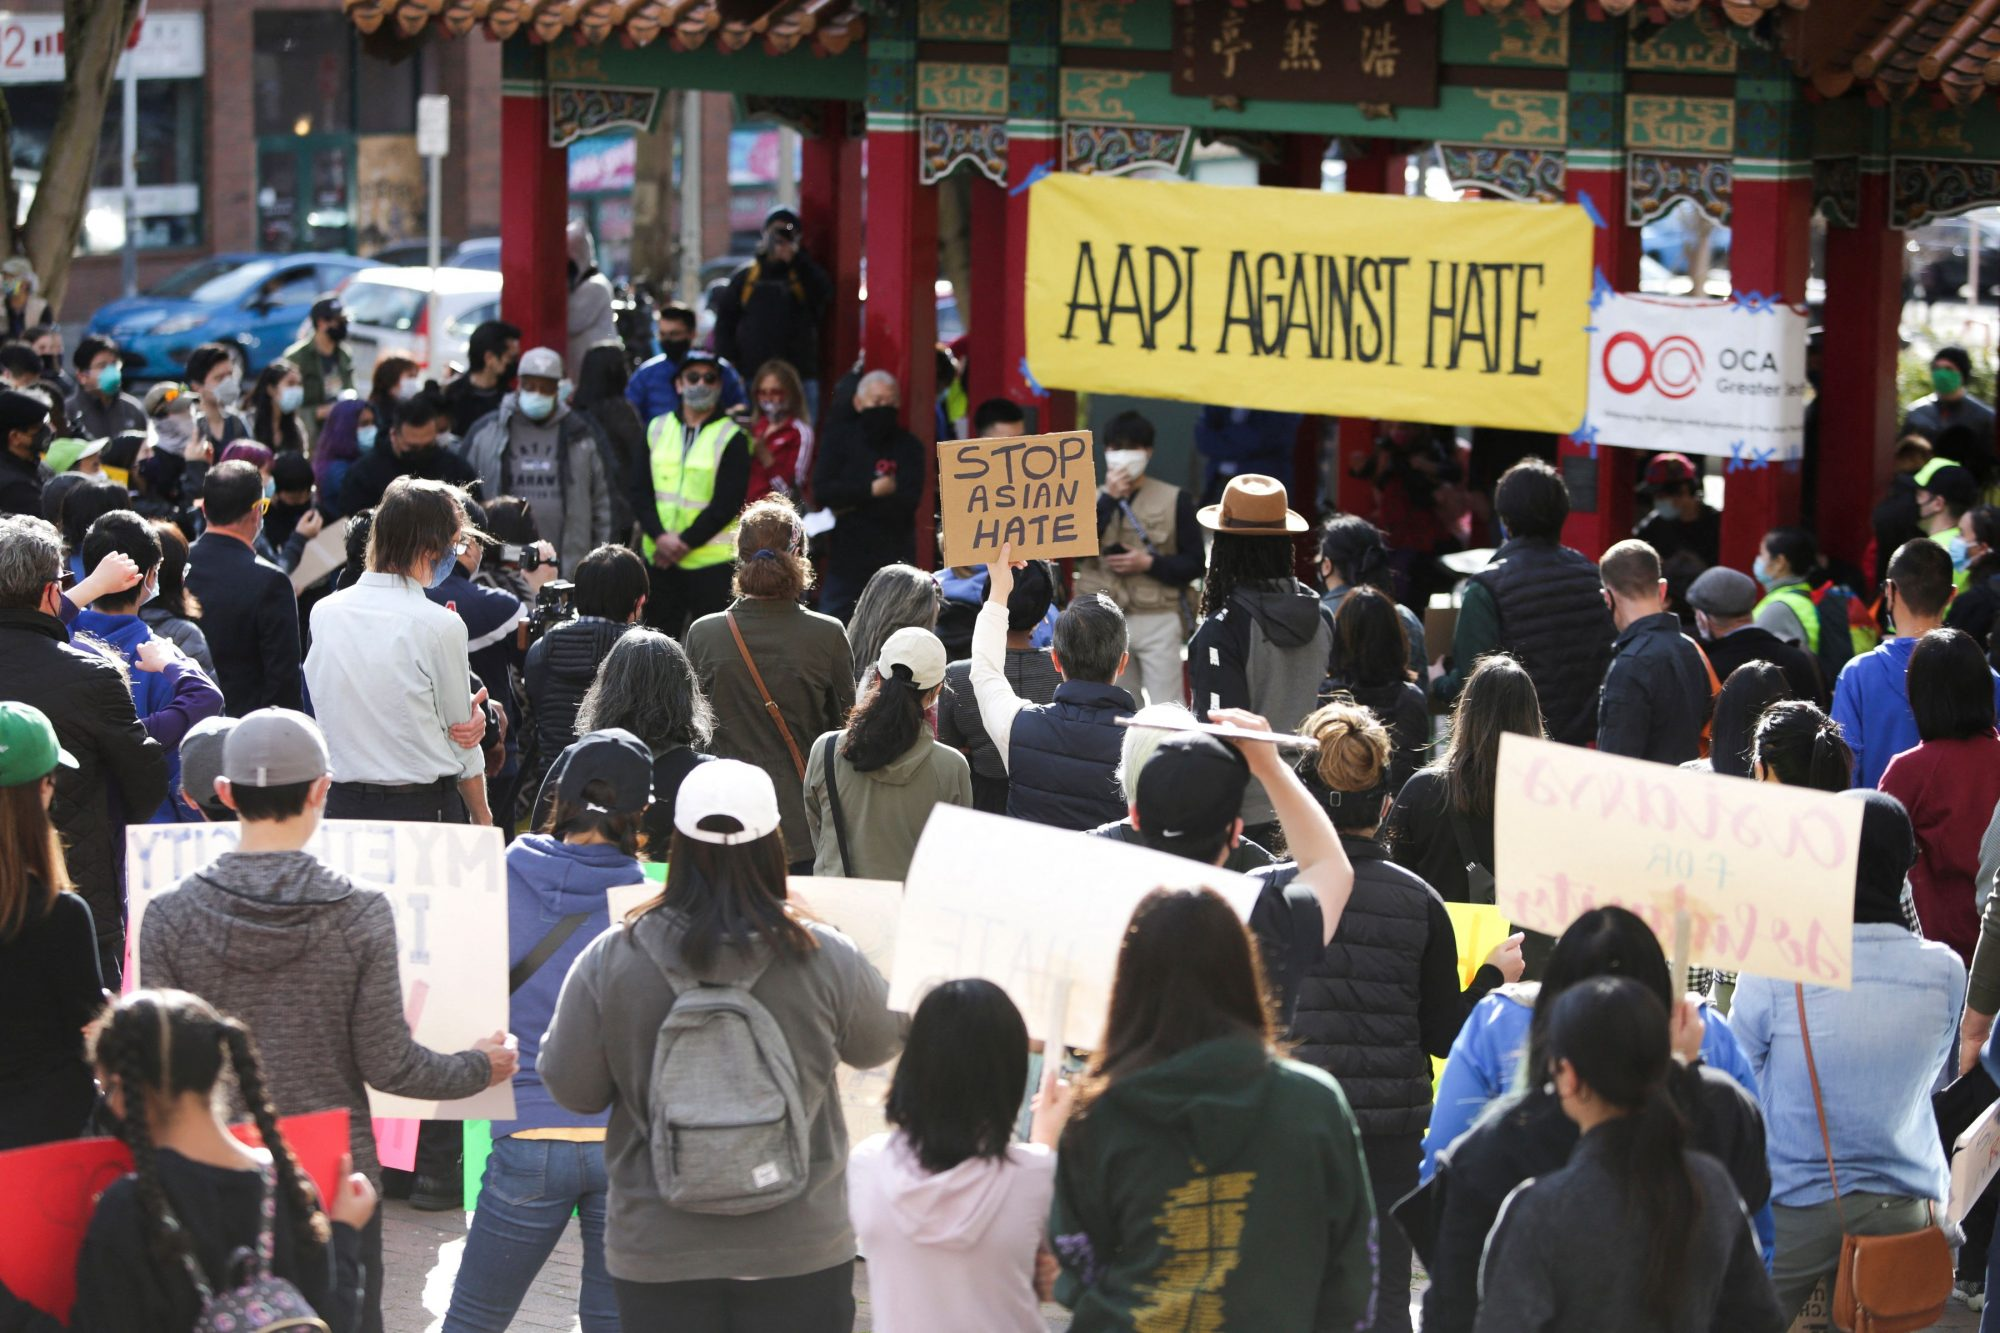 support the AAPI community